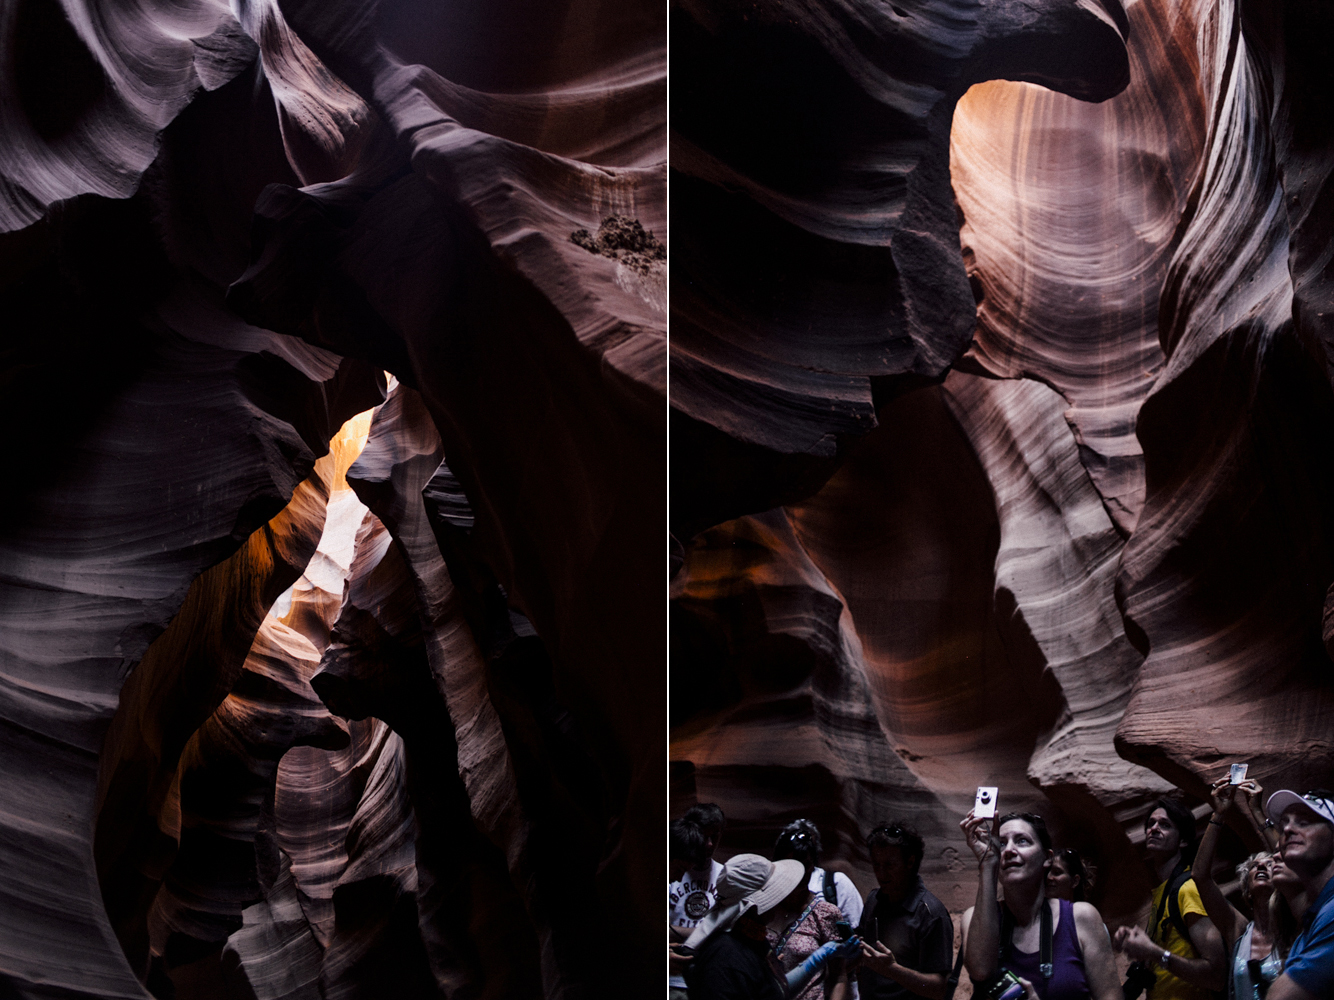 Antelope_Canyon_Photographer copy.jpg